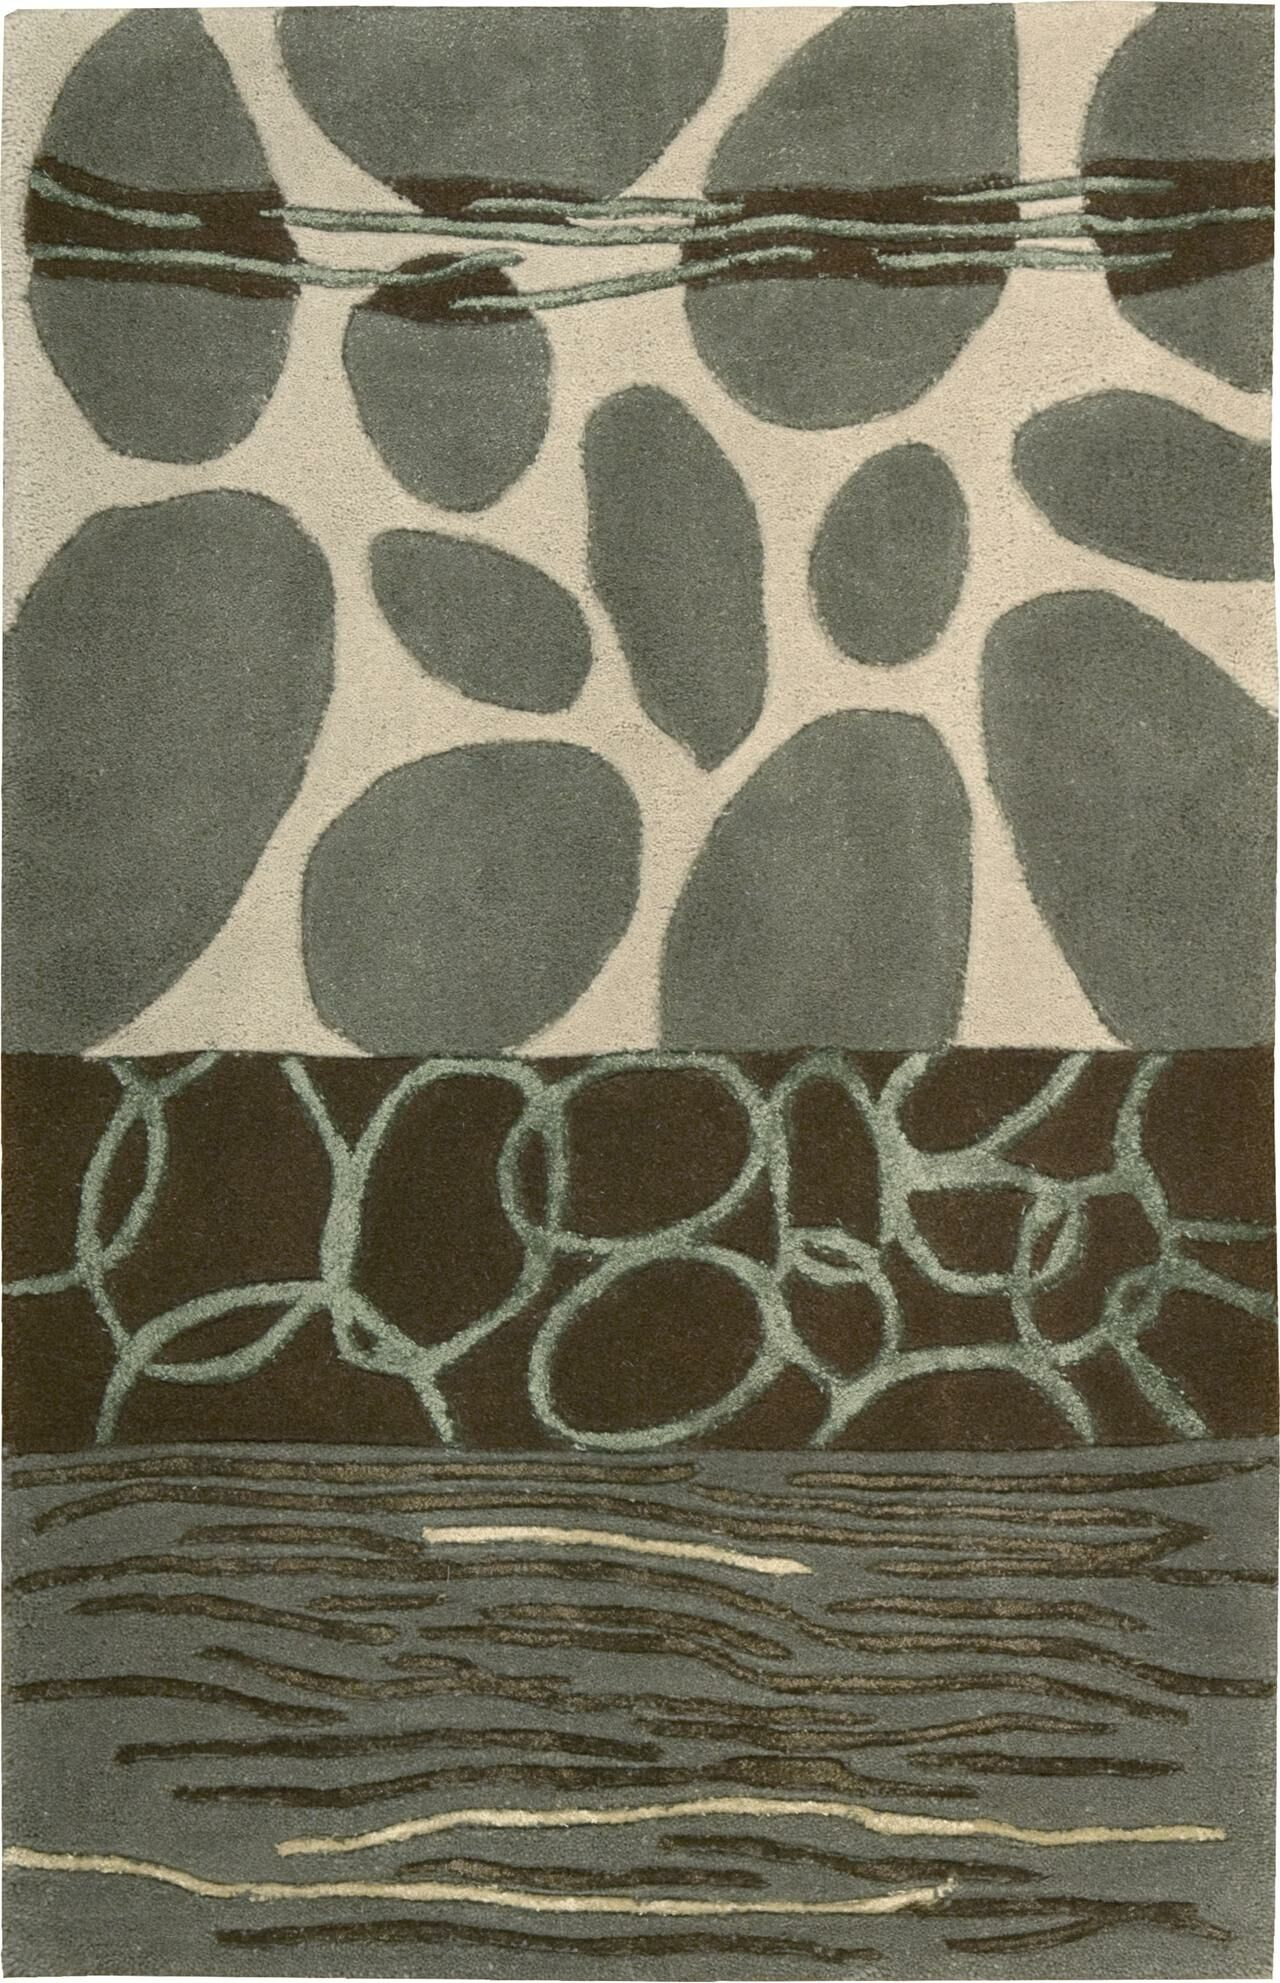 Nevada Hand-Tufted Wool Green/Blue Area Rug Rug Size: Rectangle 2' x 3'